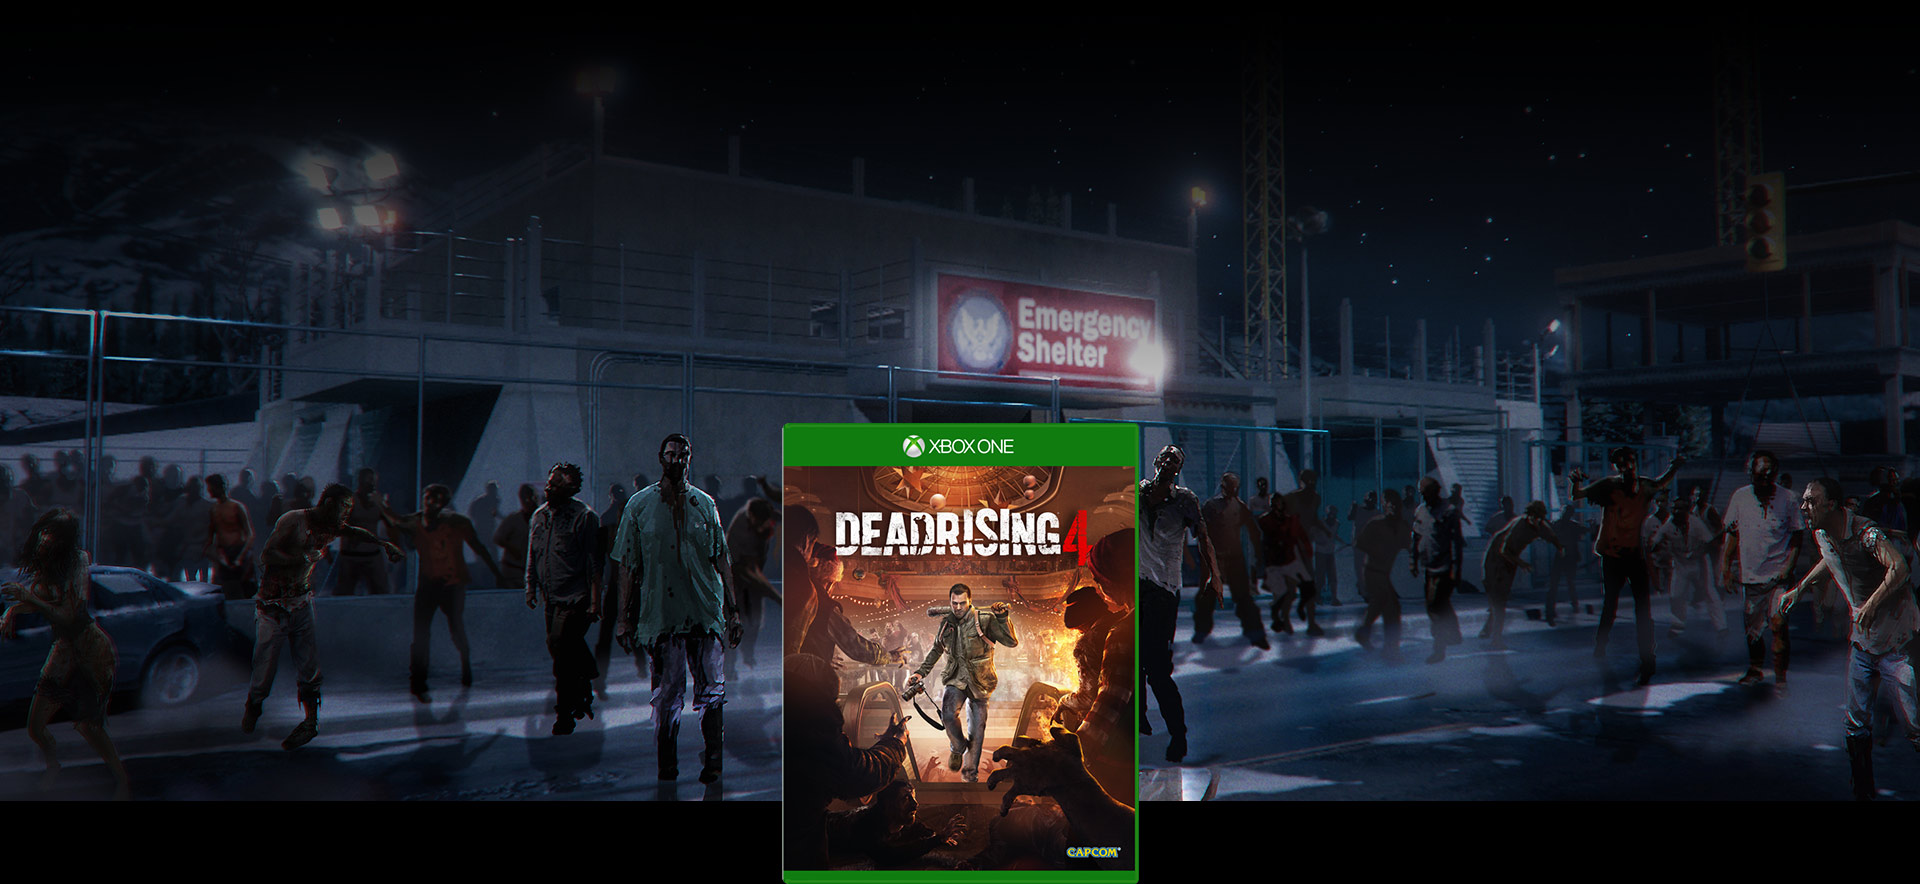 Dead Rising 4 box shot in front of a Horde of zombies at night background